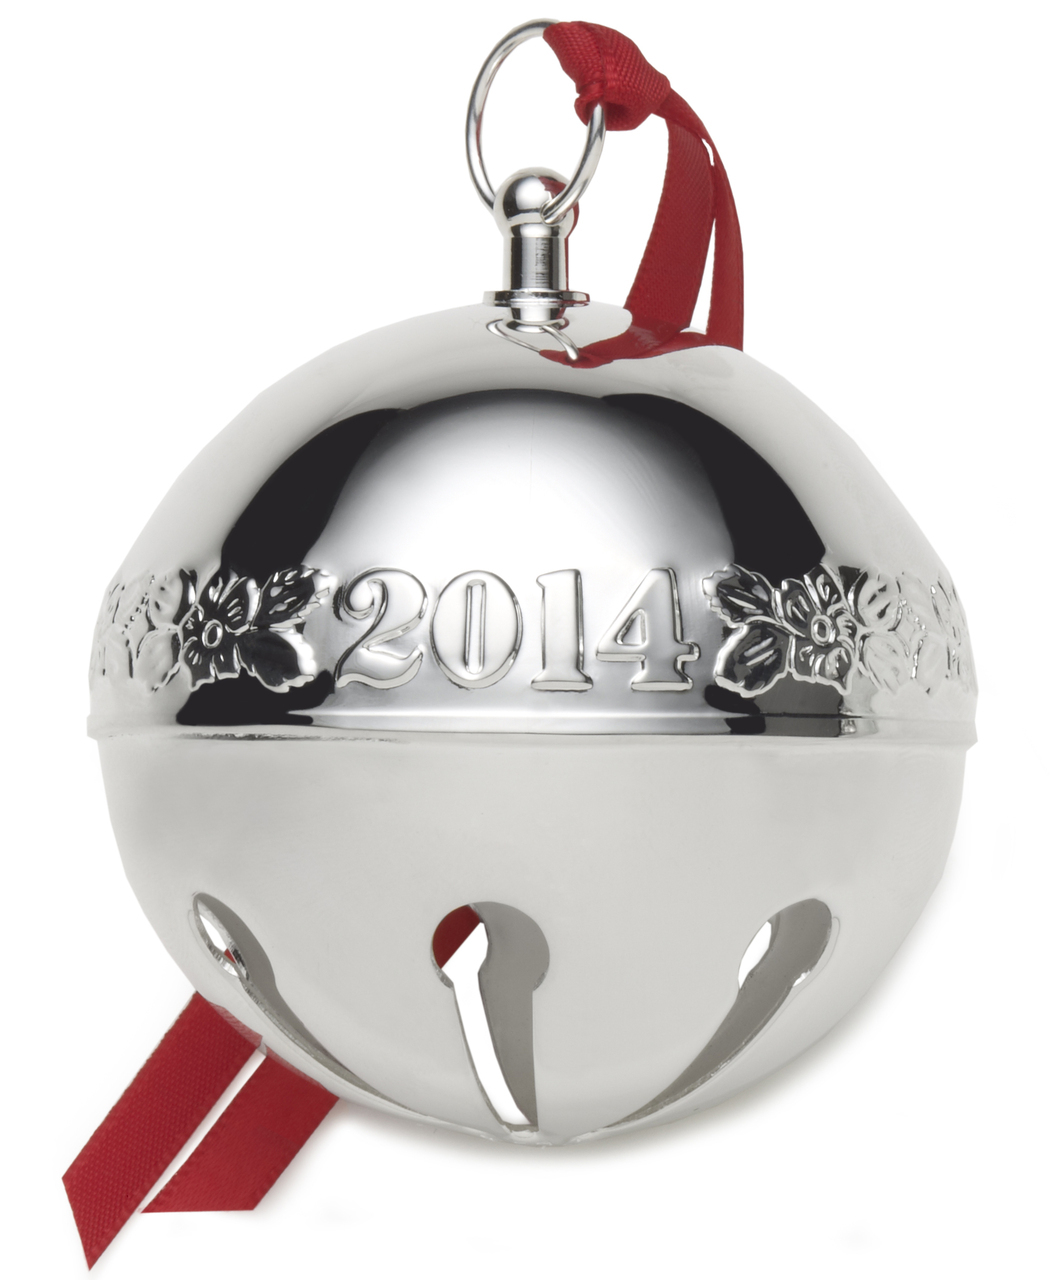 Wallace 2014 | Sleigh Bell   44th Edition |   $45.00 |   Made in the USA  5127512 - Silver-Plated